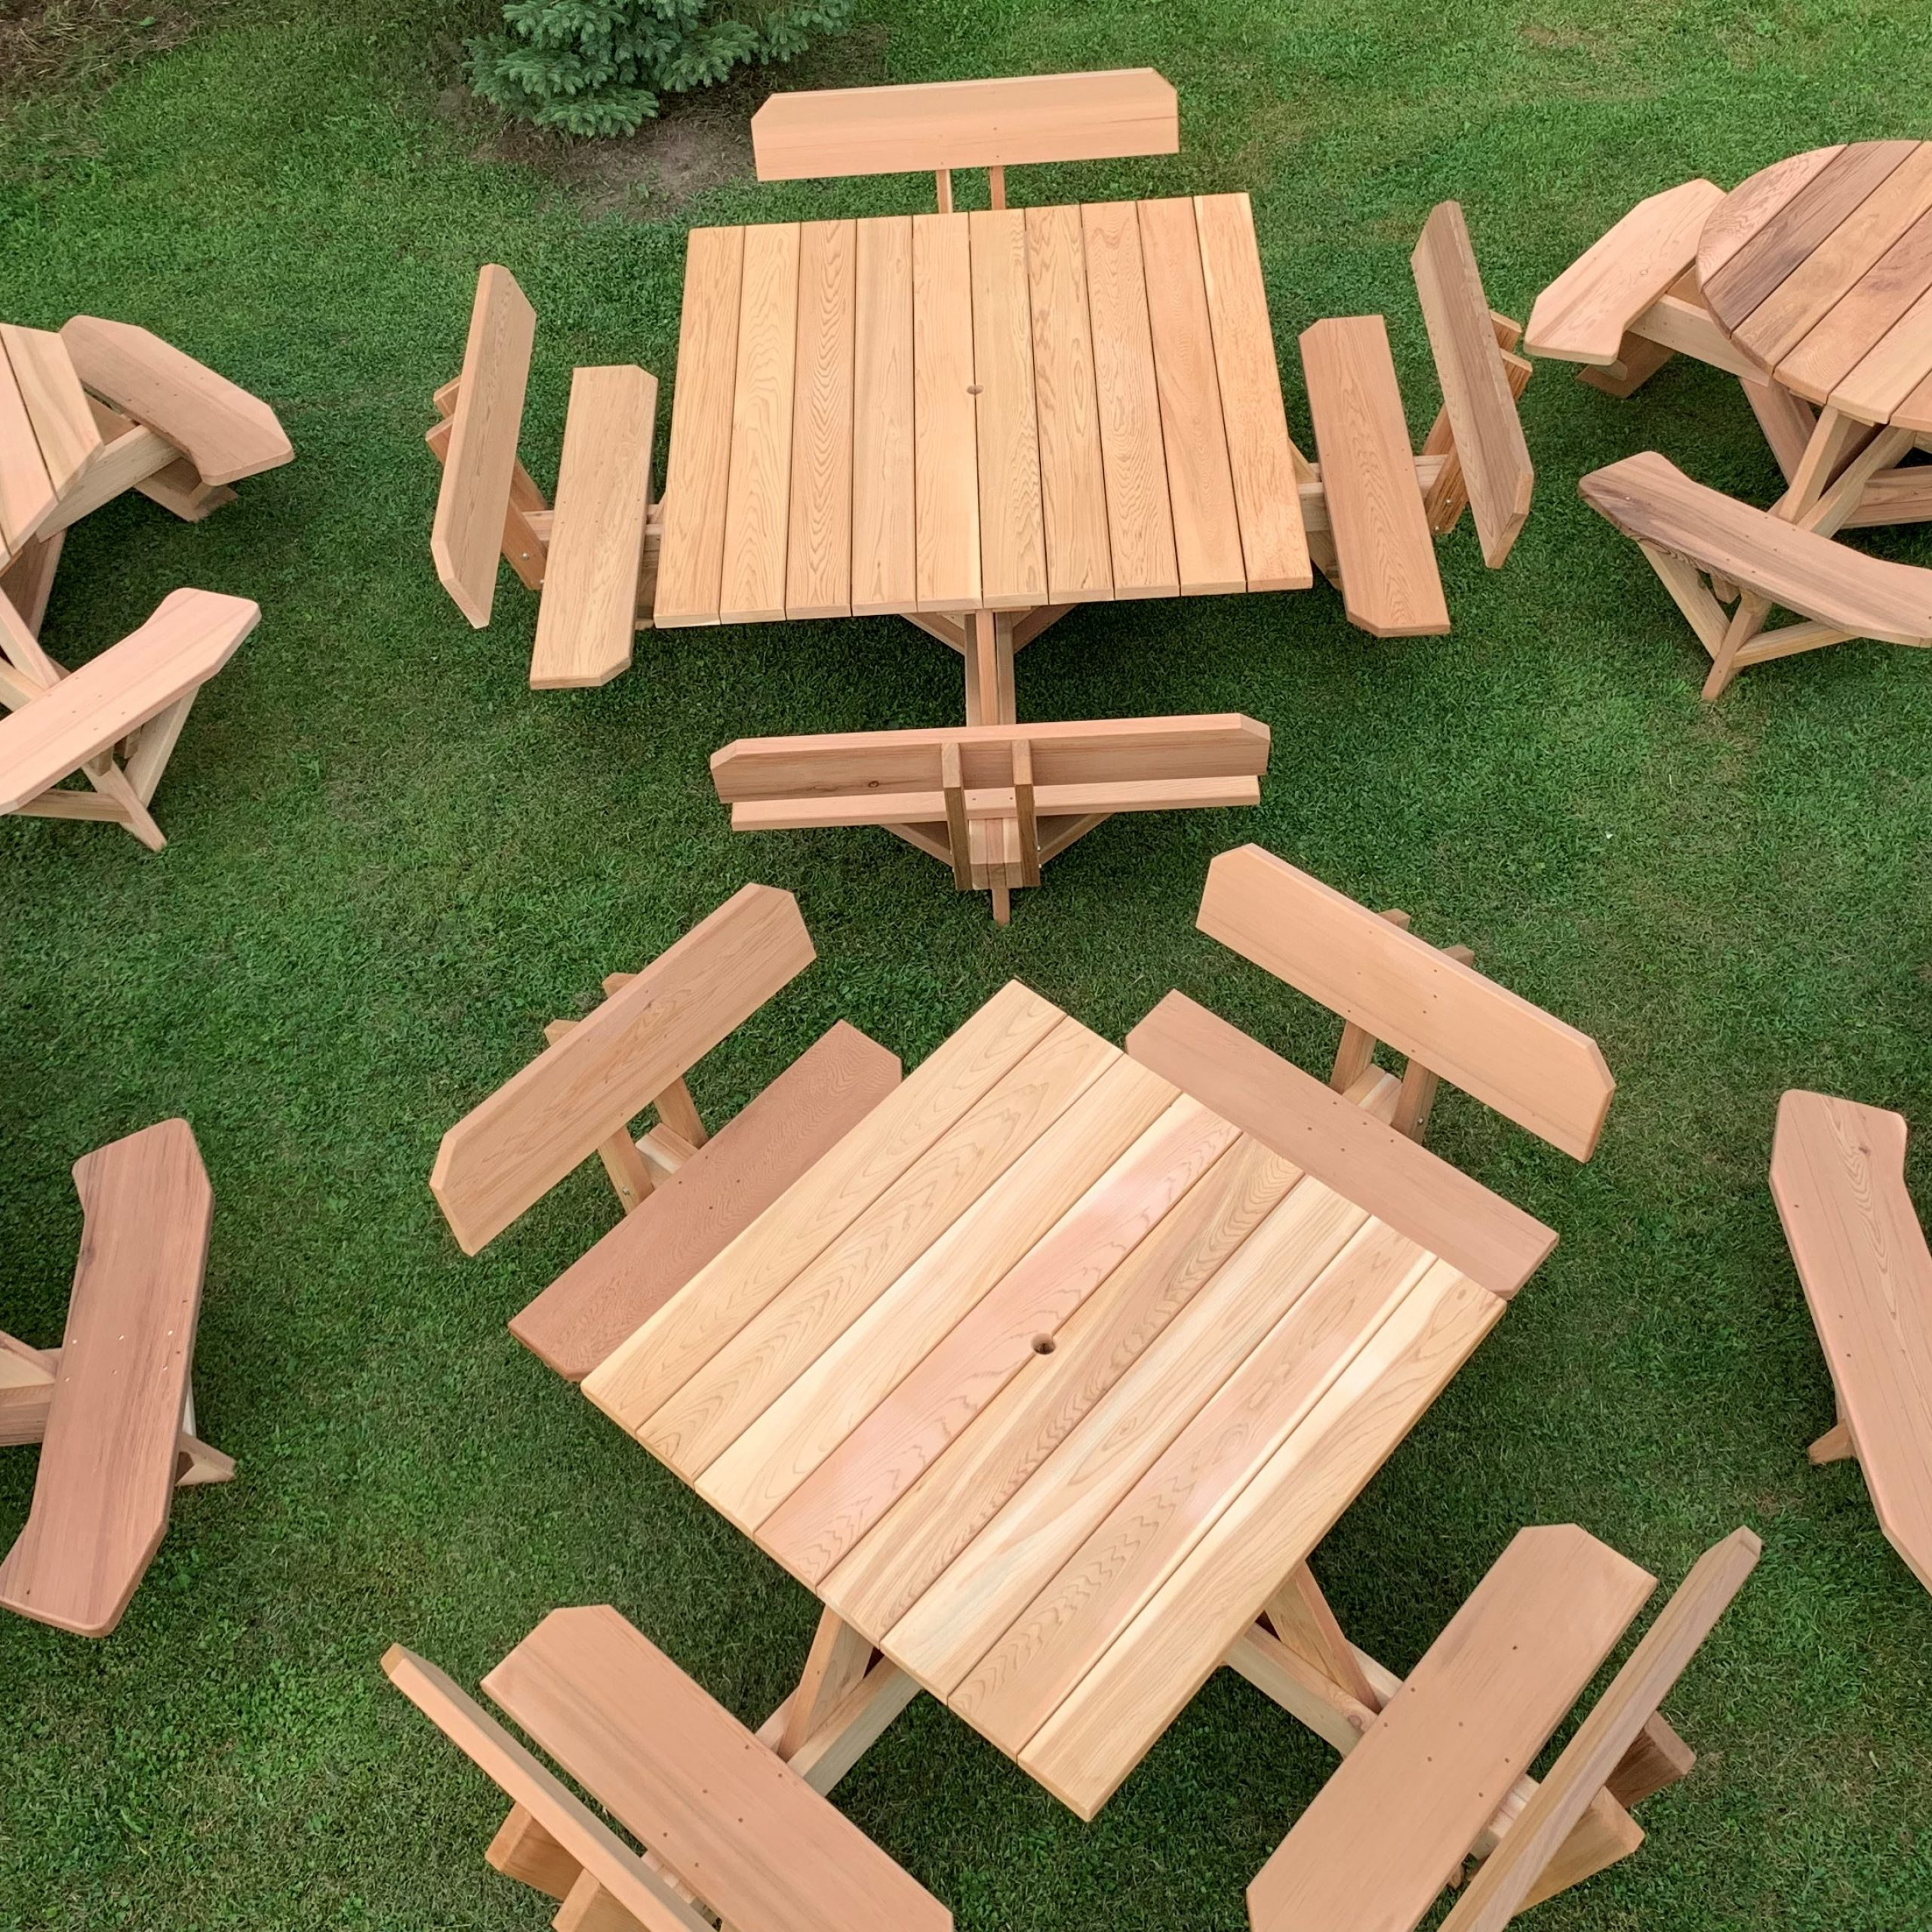 Dan's Outdoor Furniture – Handcrafted Cedar Furniture For Pertaining To 3 Person Natural Cedar Wood Outdoor Swings (View 23 of 25)